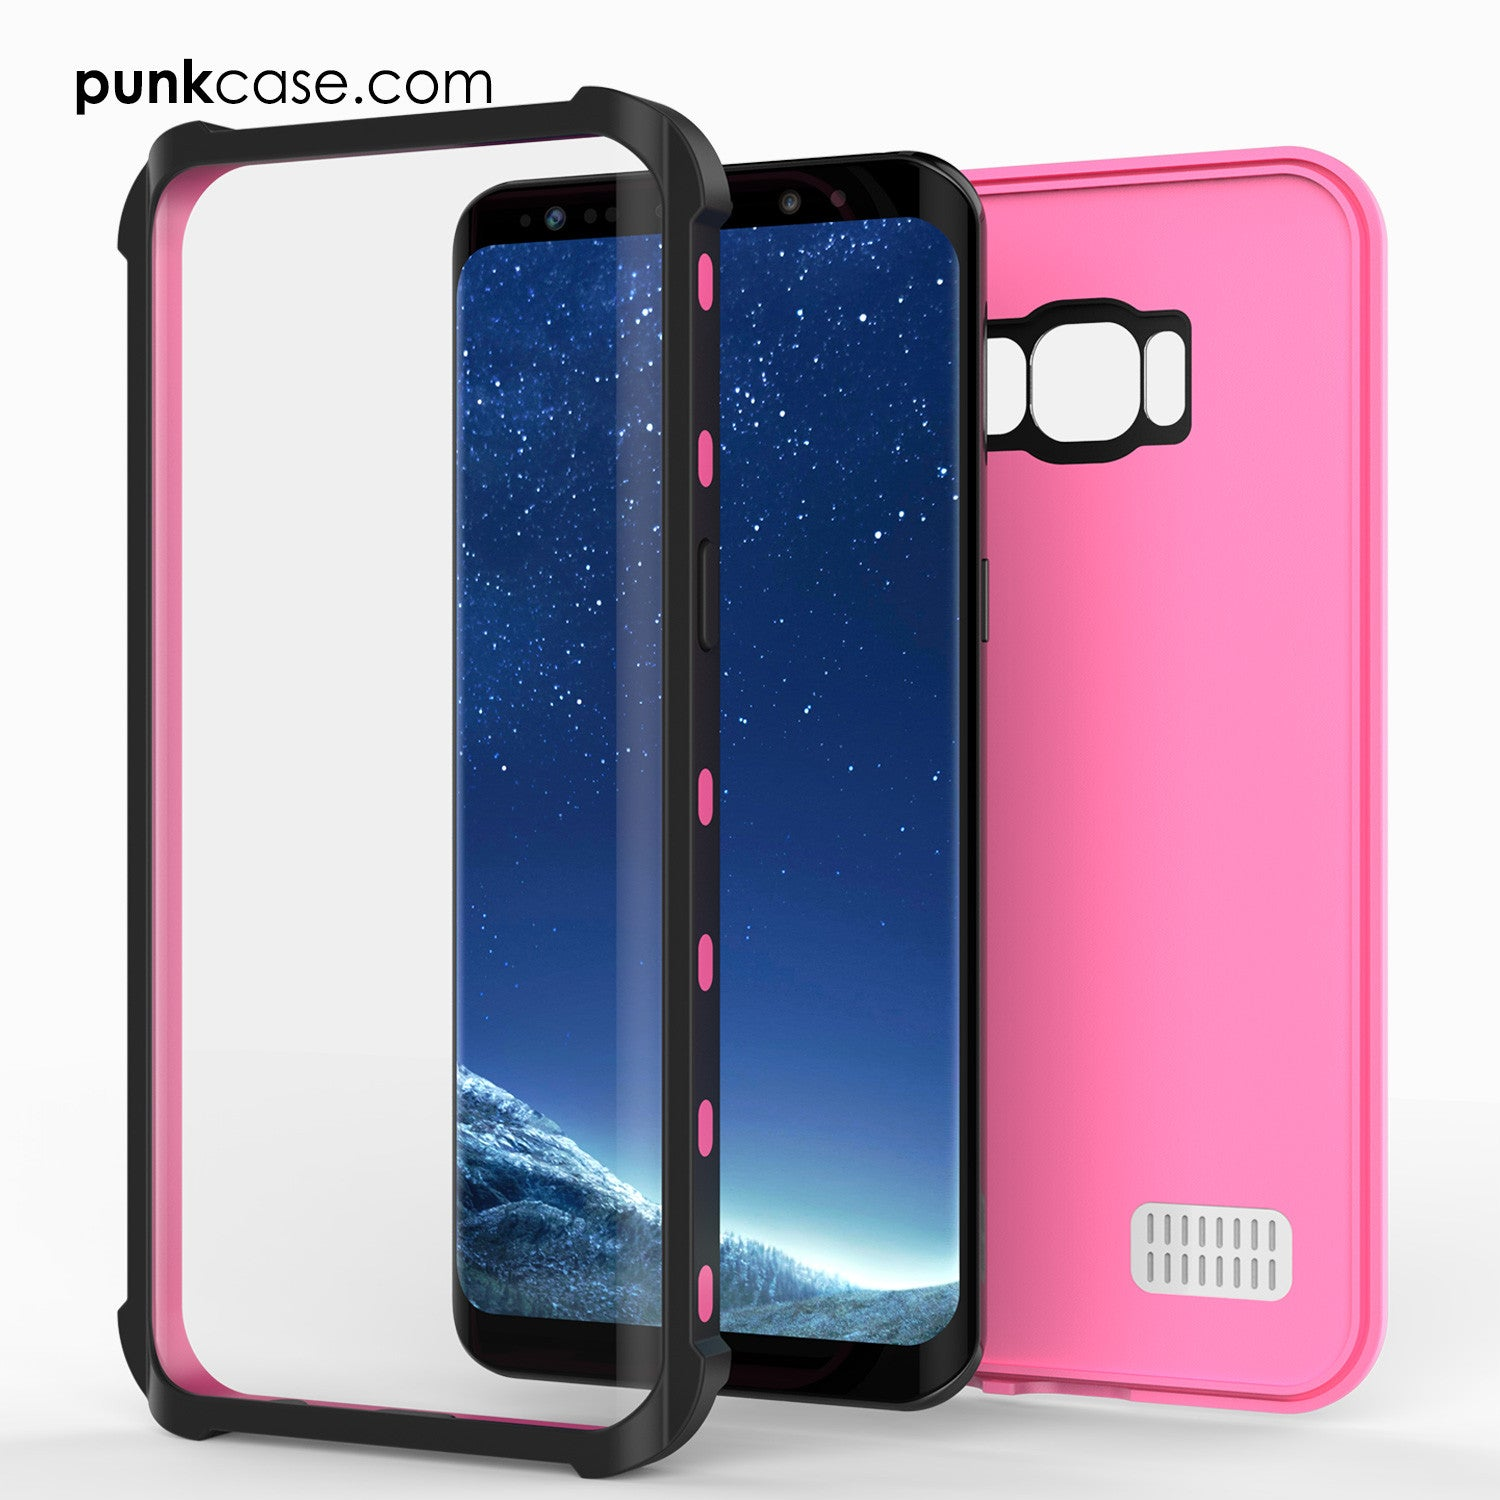 Galaxy S8 Waterproof Case, Punkcase [KickStud Series] [Slim Fit] [IP68 Certified] [Shockproof] [Snowproof] Armor Cover [PINK]